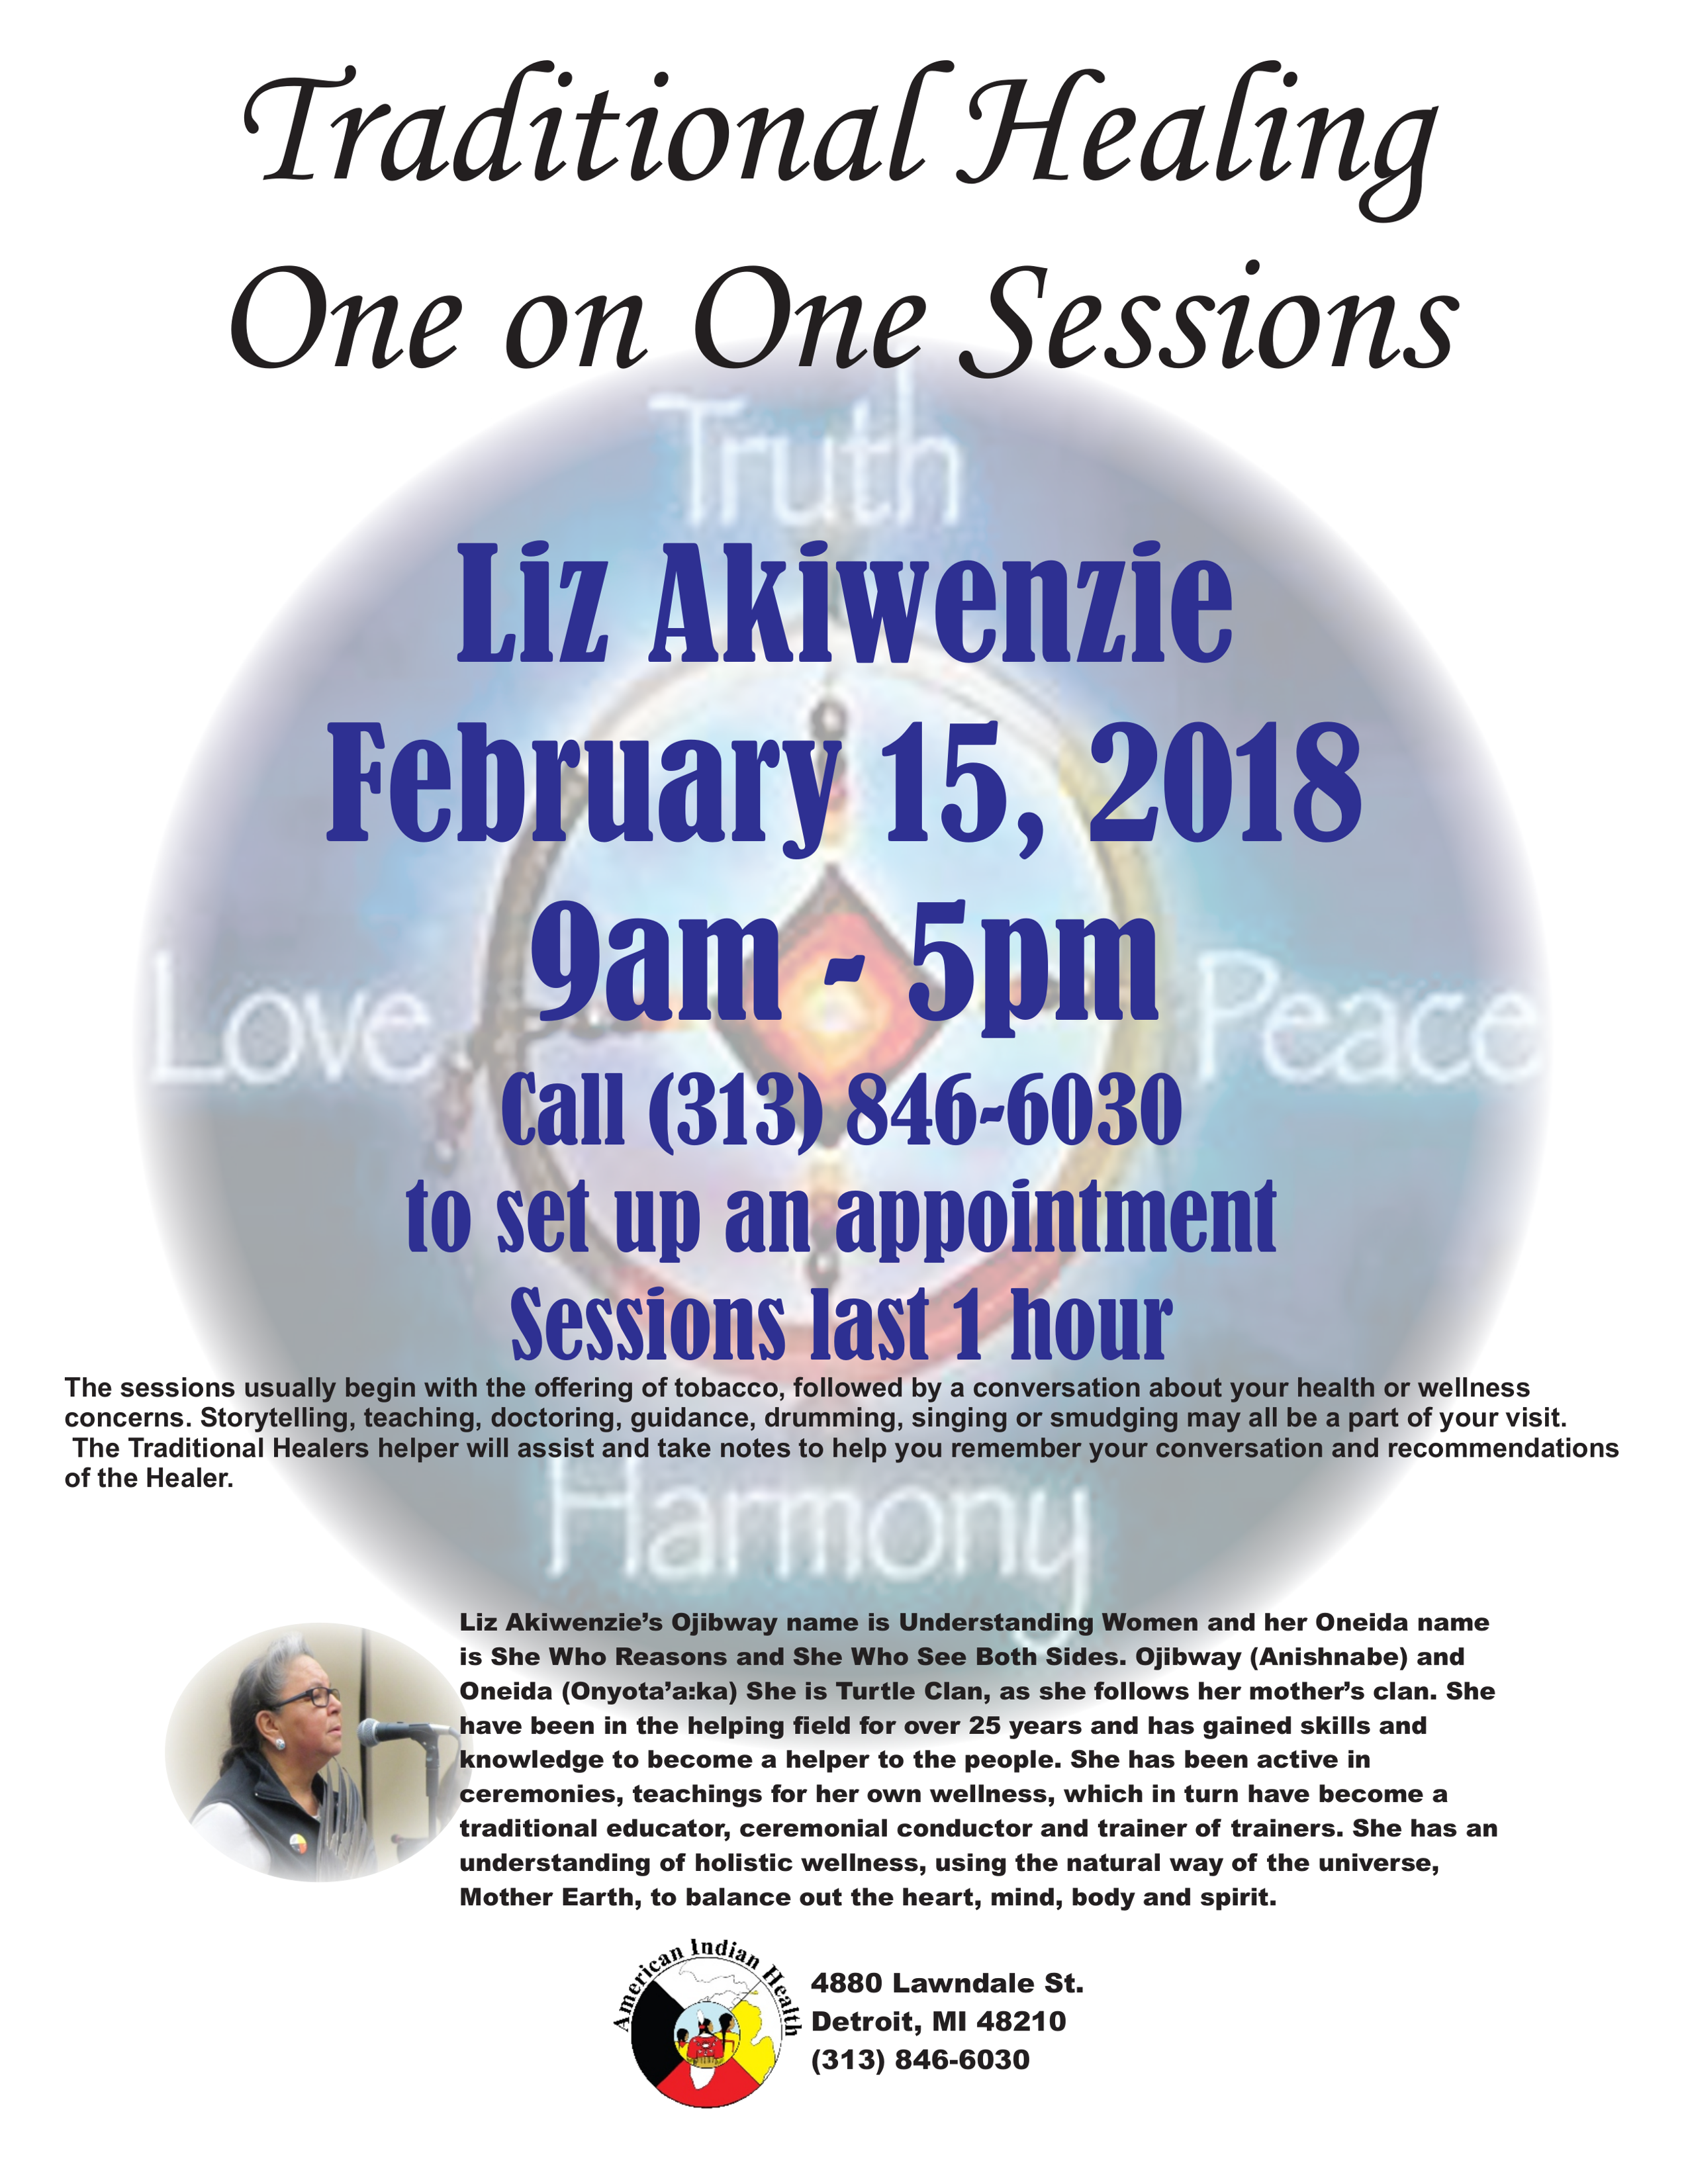 Aihfs community announcements traditional healing traditional healing one on one sessions with liz akiwenzie will be conducted february 15 from 9am to 5pm please call 313 846 6030 aiddatafo Image collections